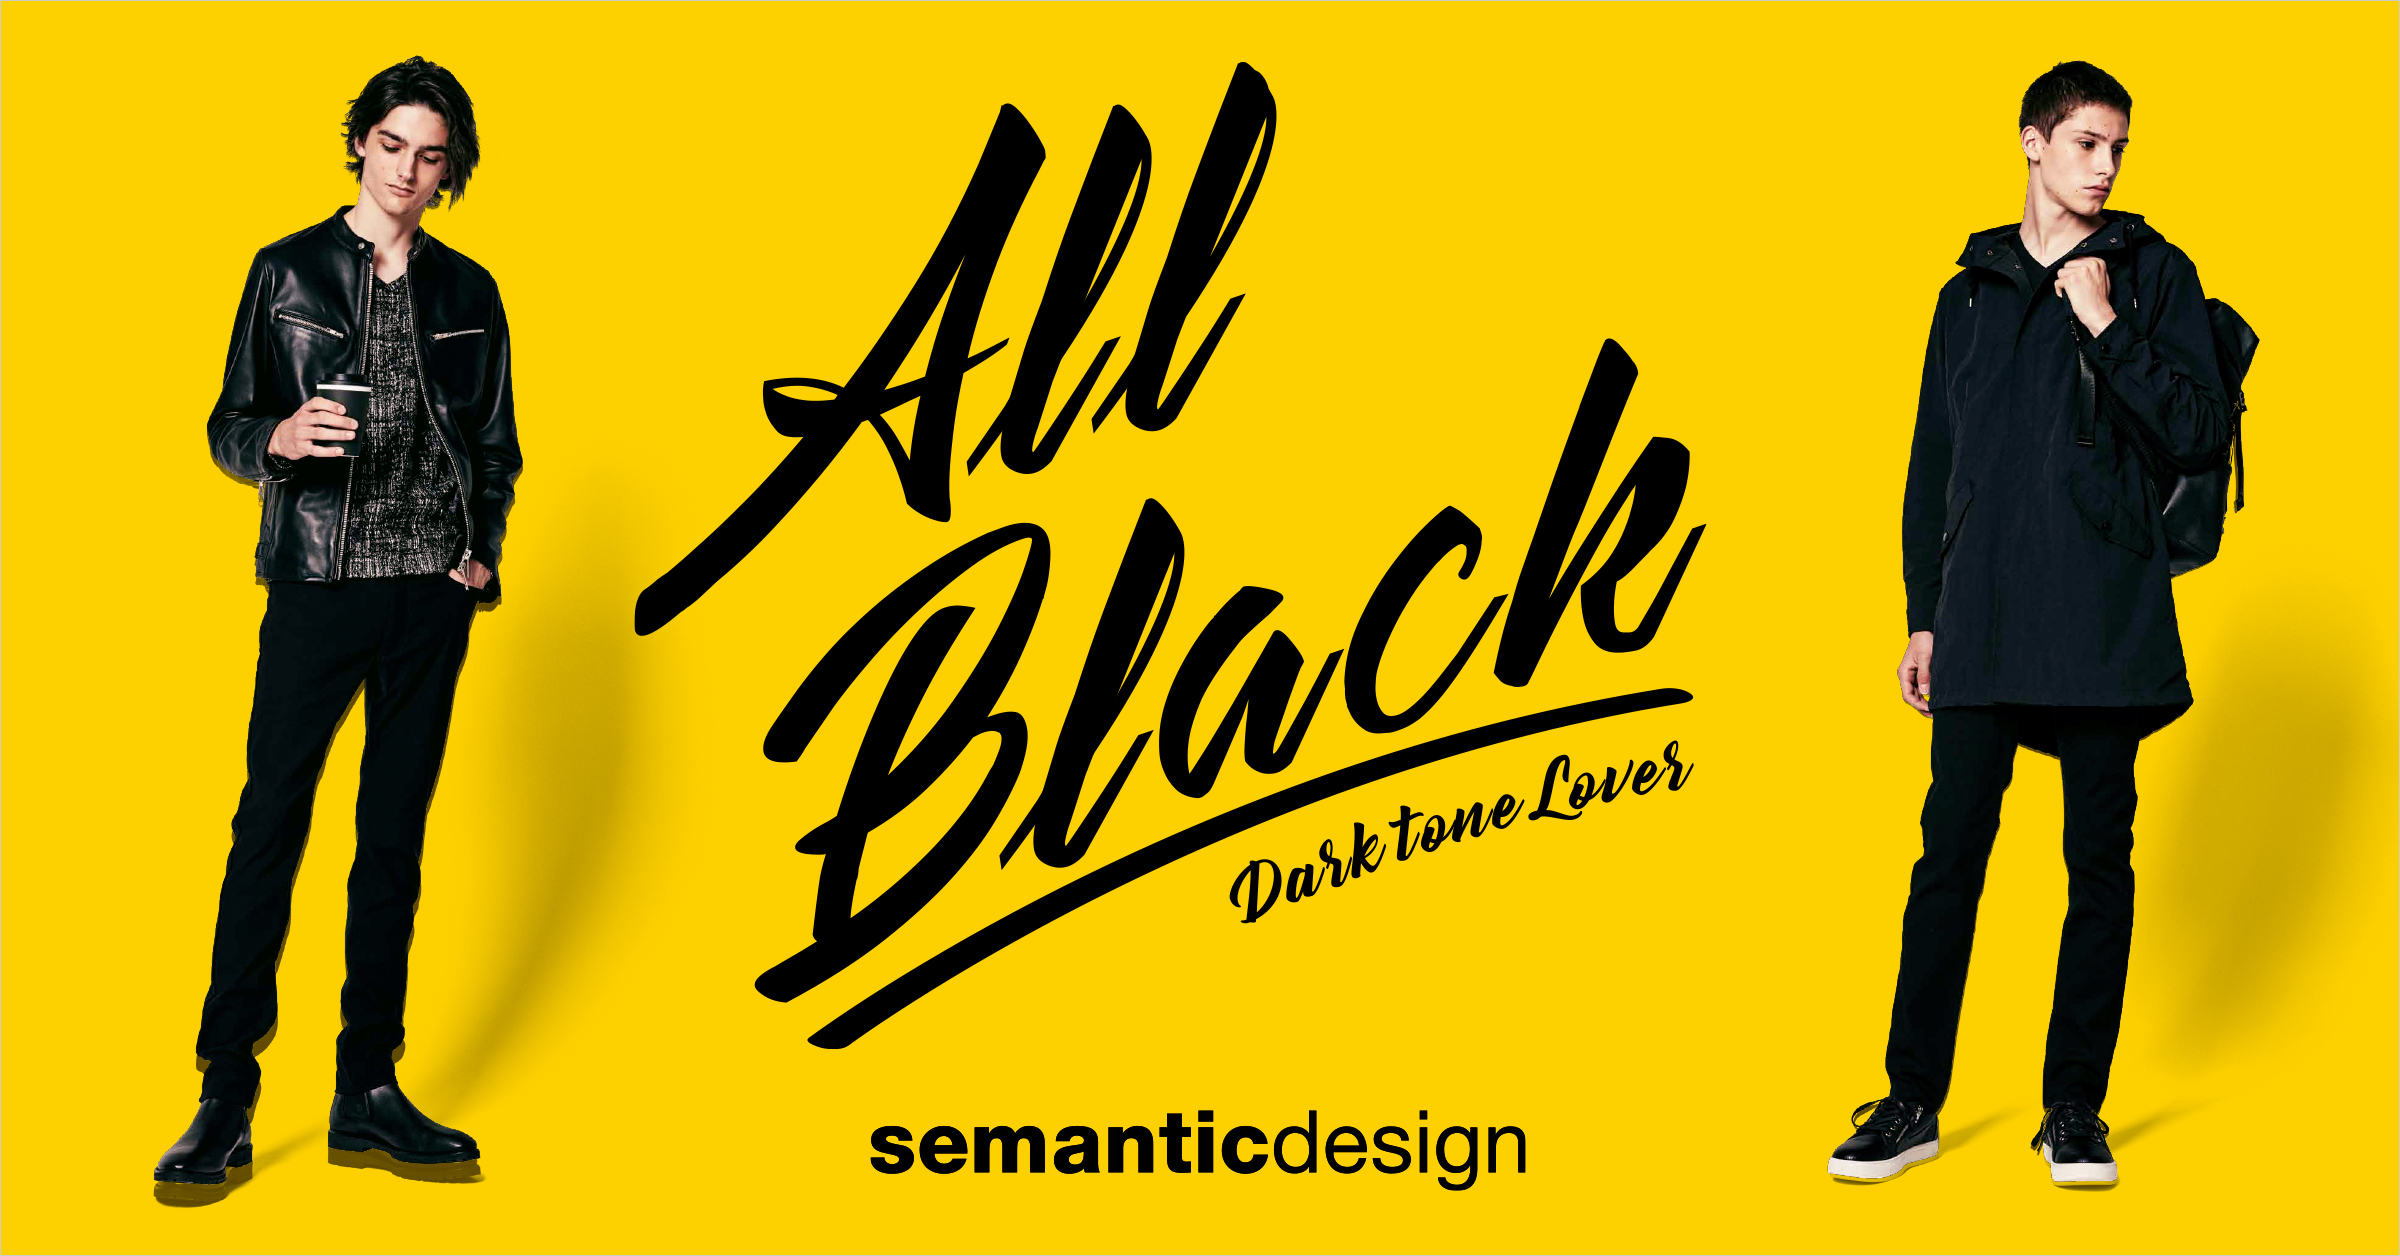 semantic design All Black